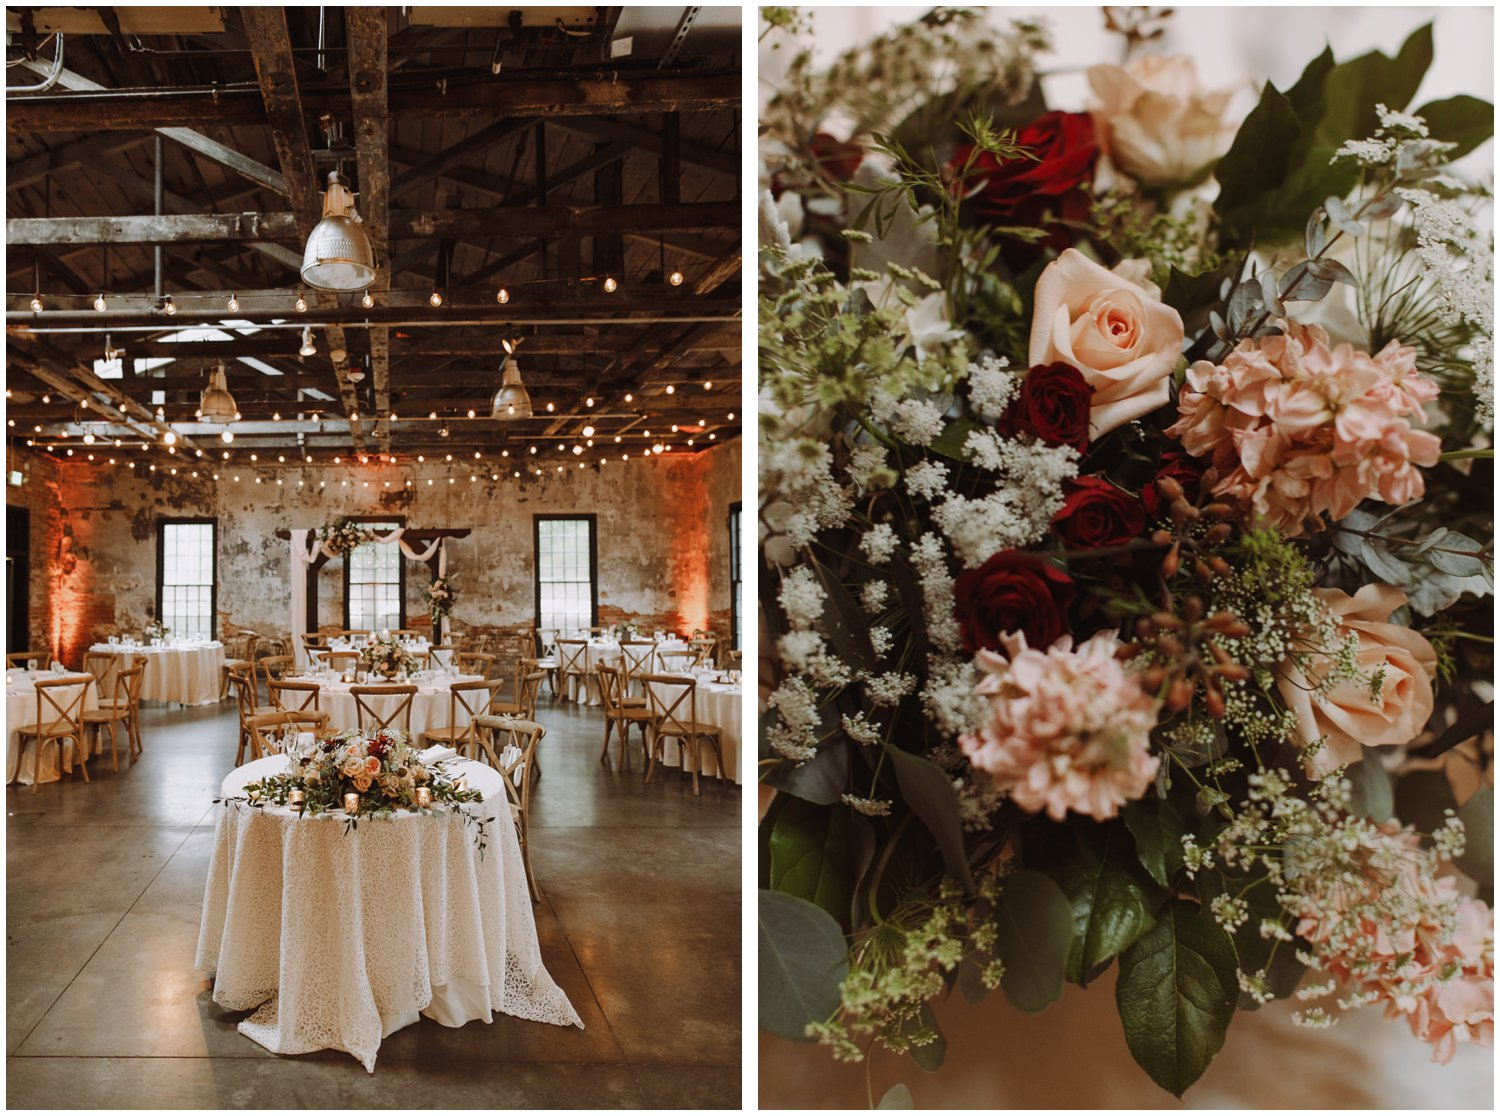 Baltimore wedding photographer | Mt Washington Mill Dye House wedding reception | floral wedding centerpiece | Baltimore Maryland wedding